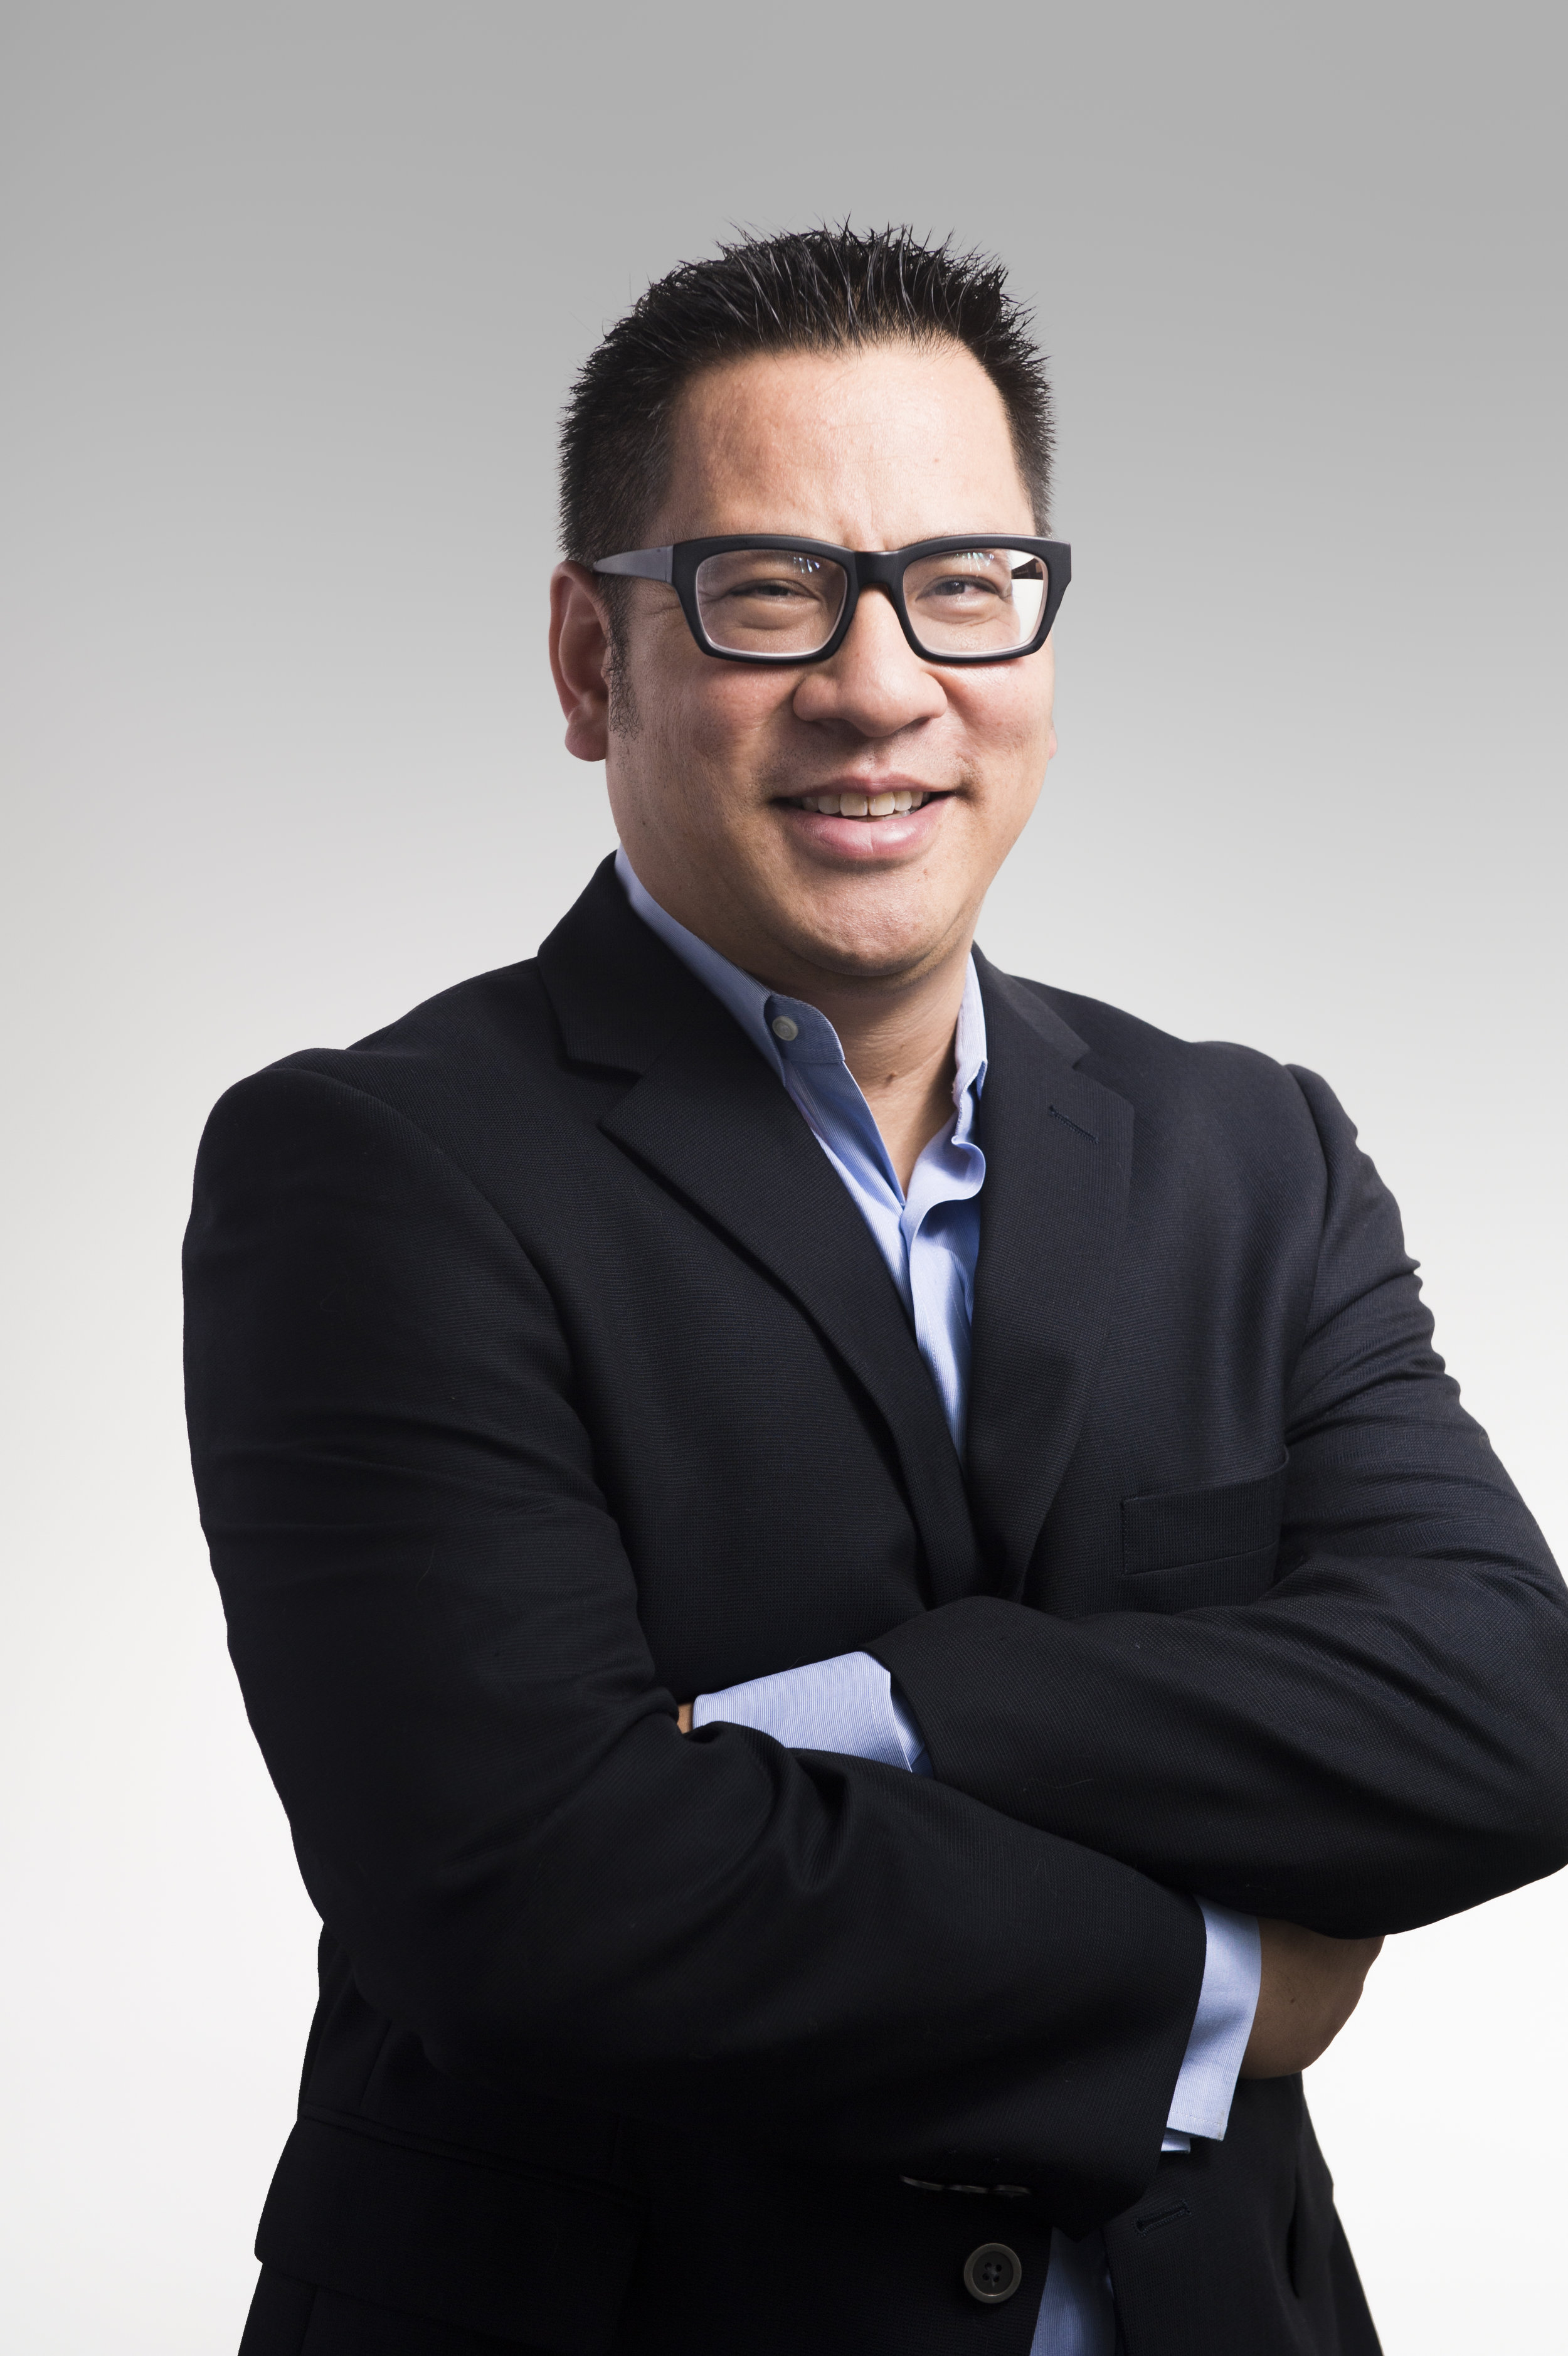 Peter Nguyen, General Counsel, Resolver